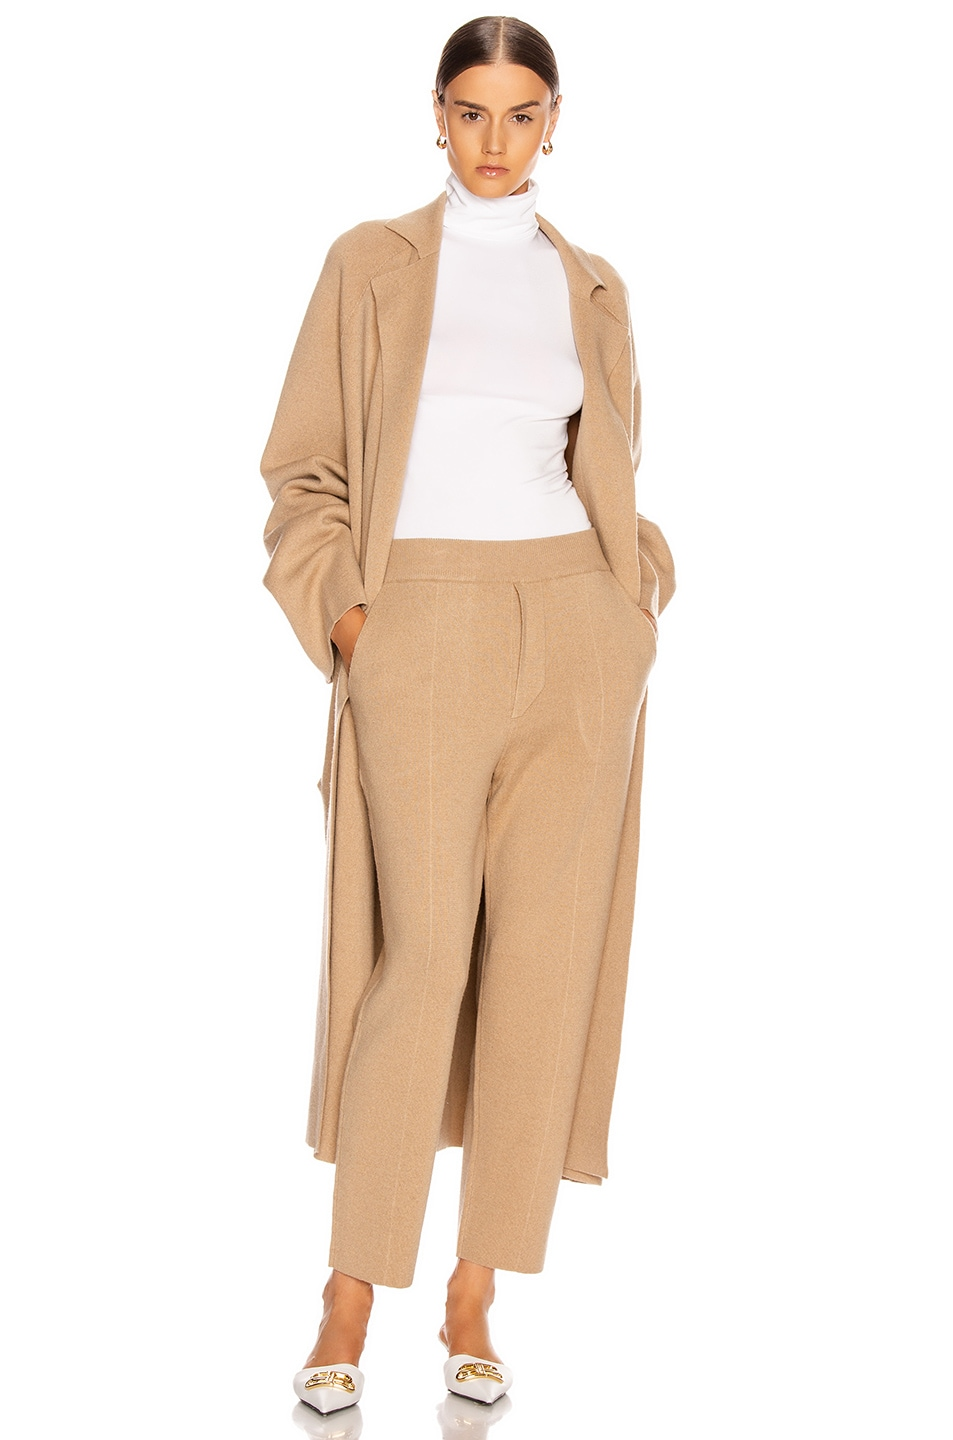 Image 4 of Haider Ackermann Knitted Trousers in Invidia Camel